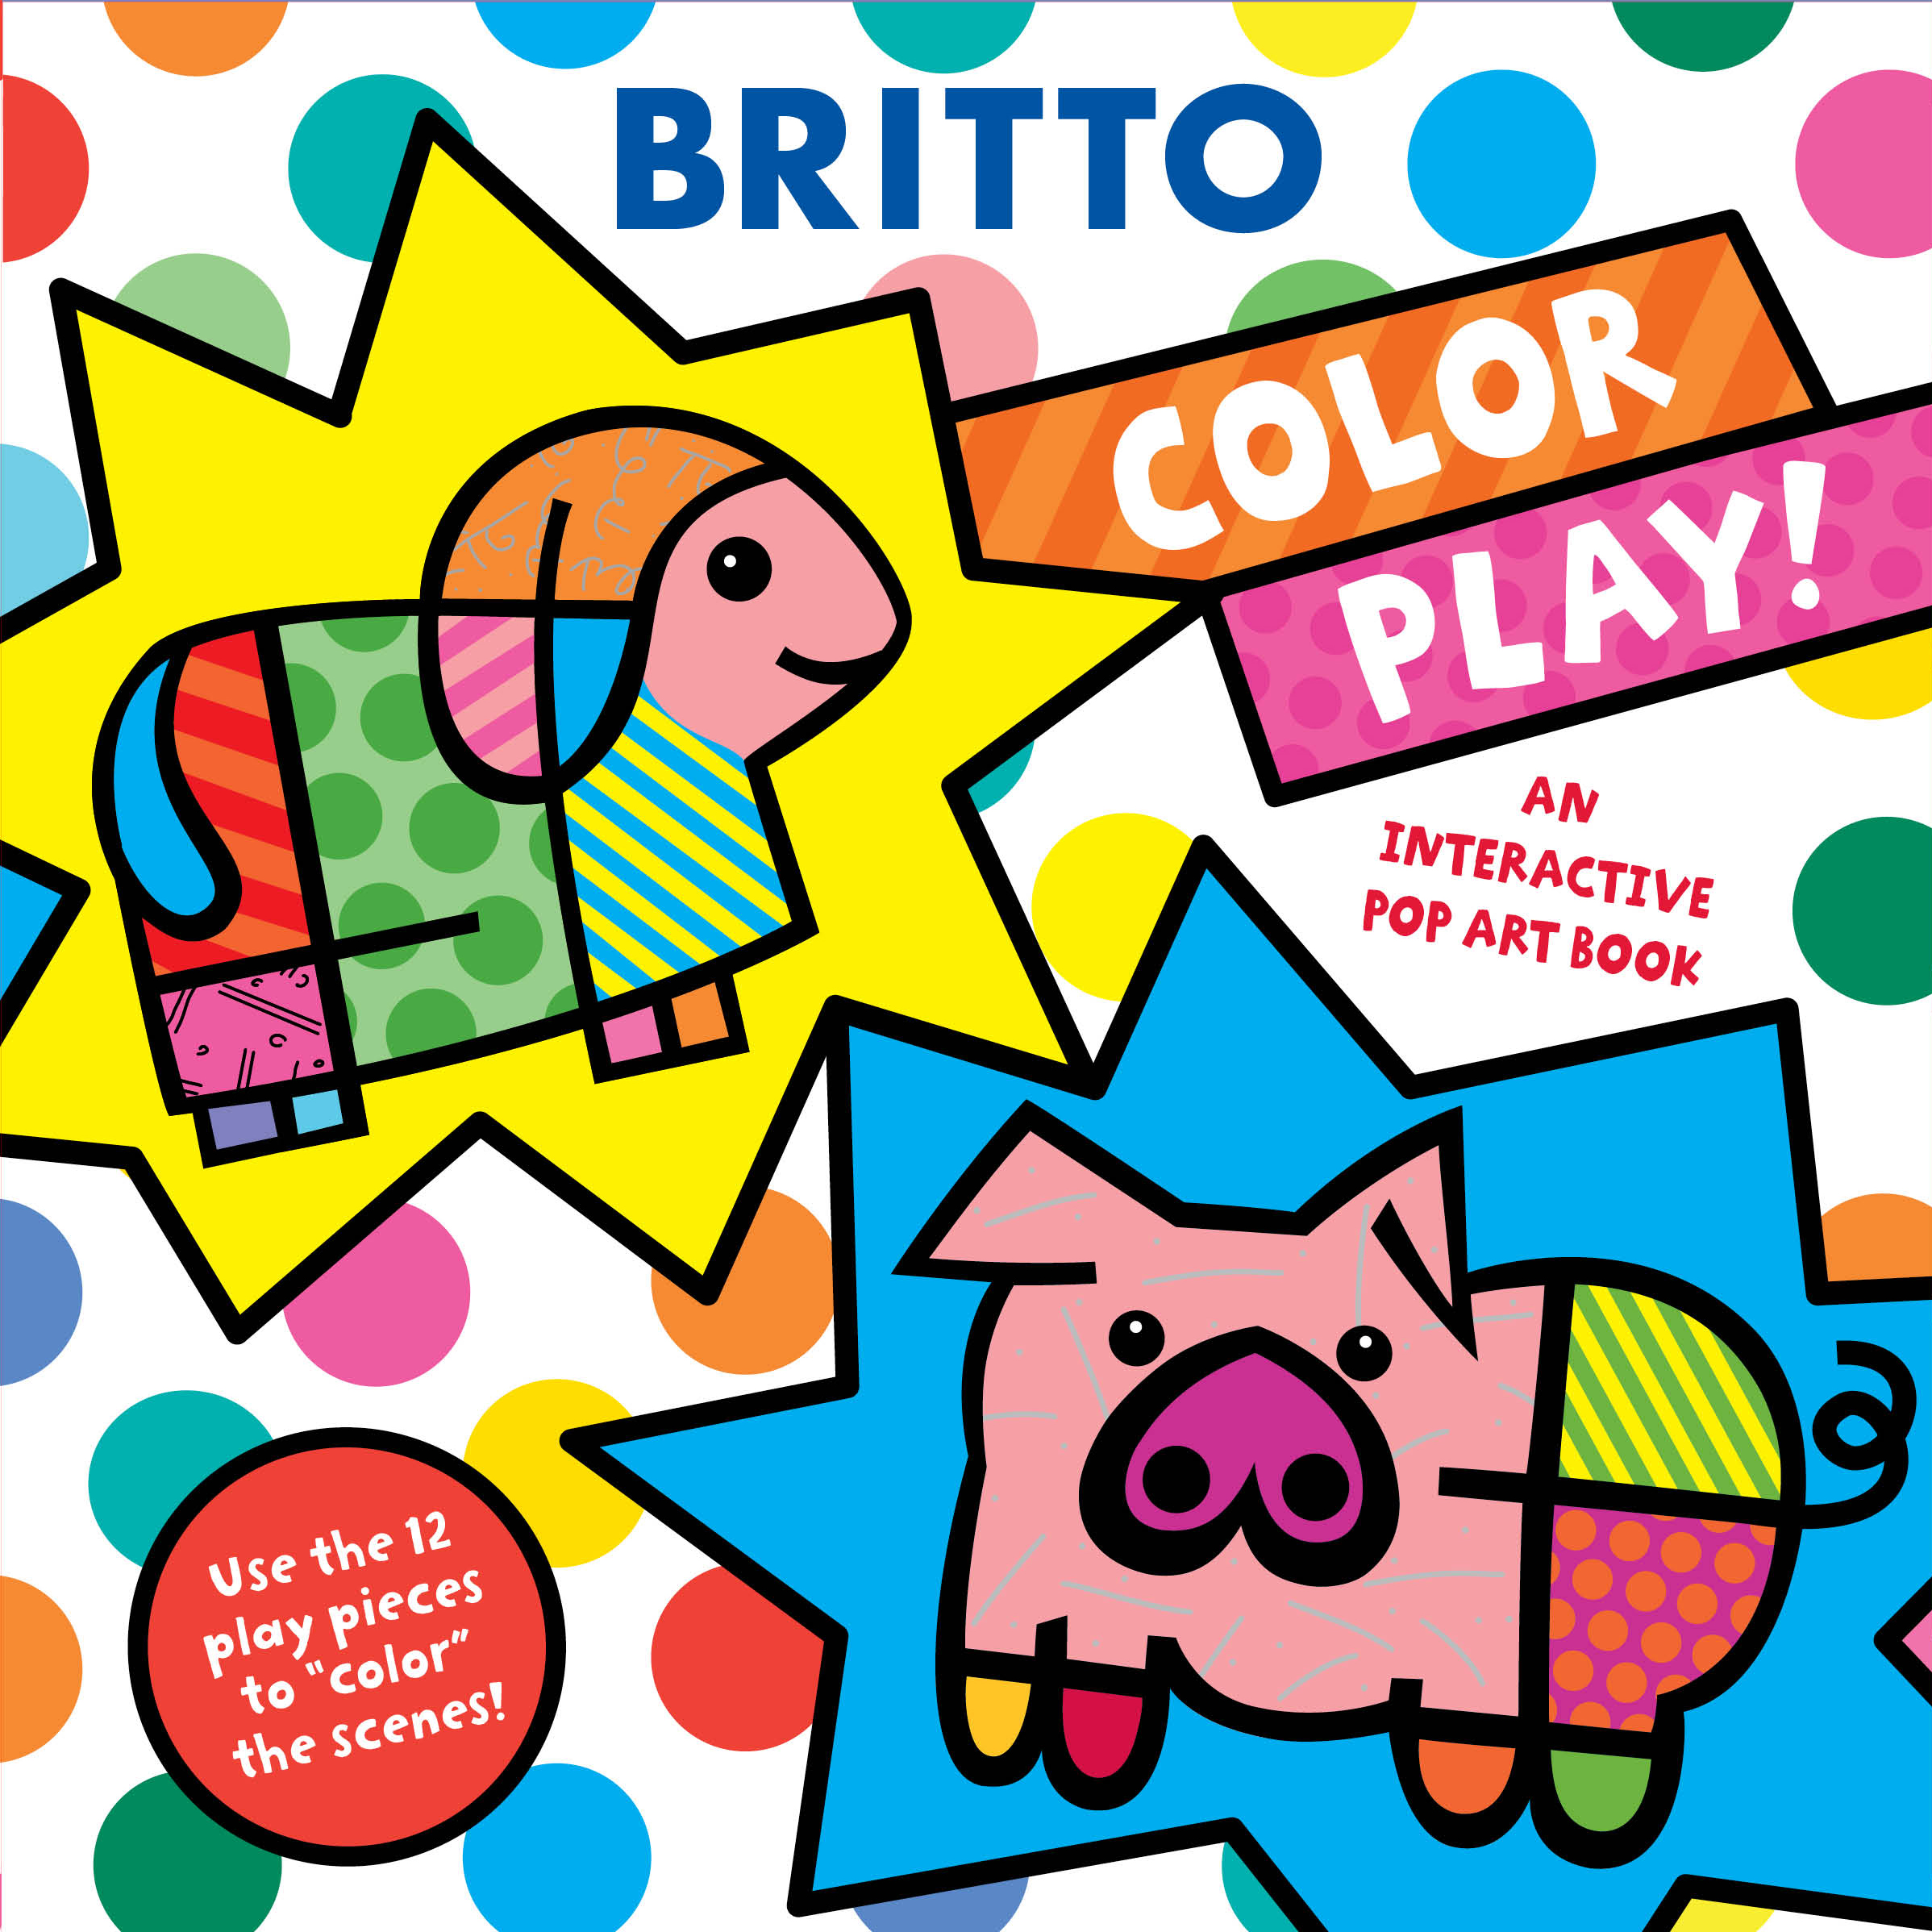 an interactive pop art book color play